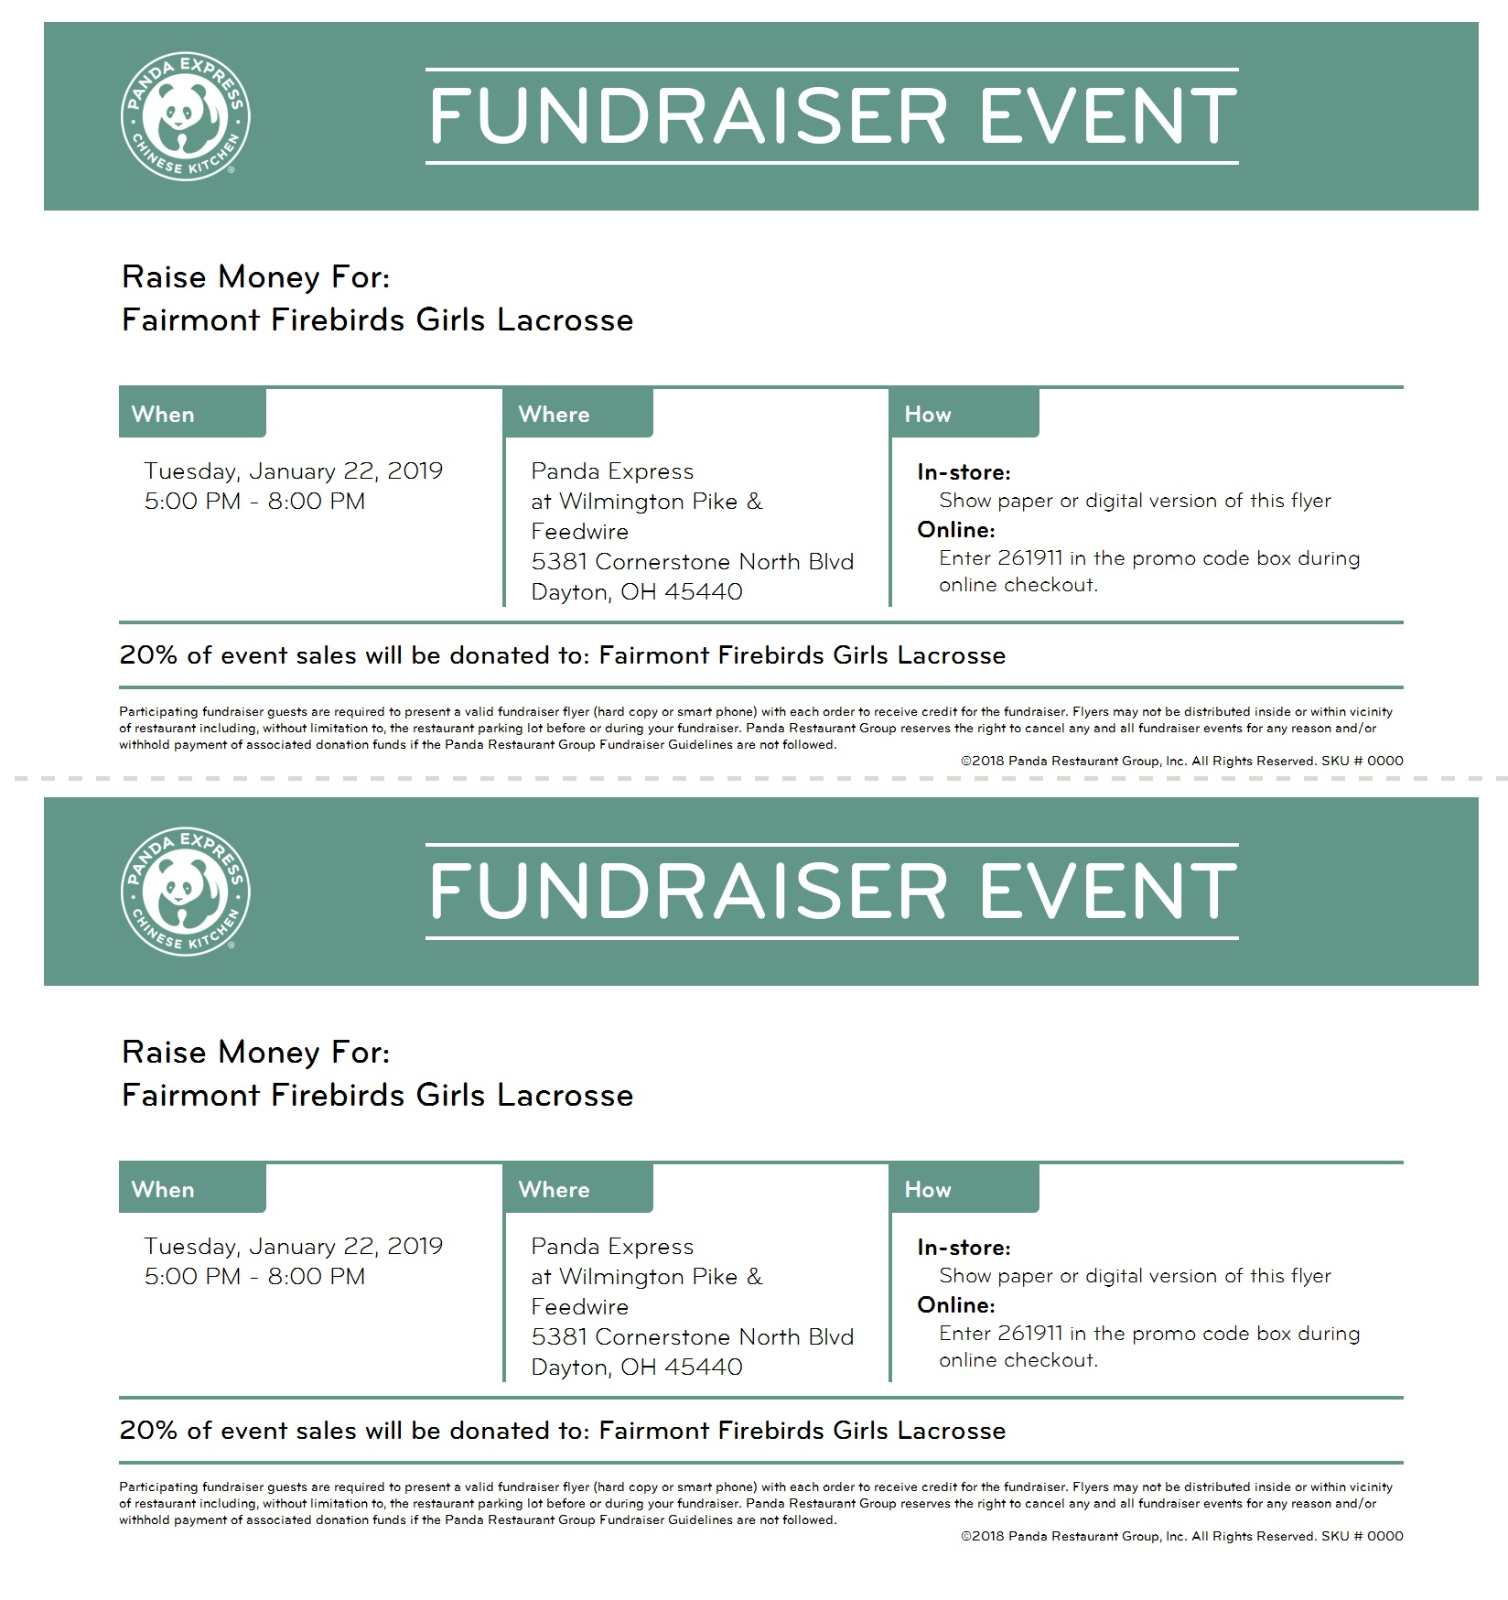 Girls Lacrosse Panda Express Fundraiser Tomorrow